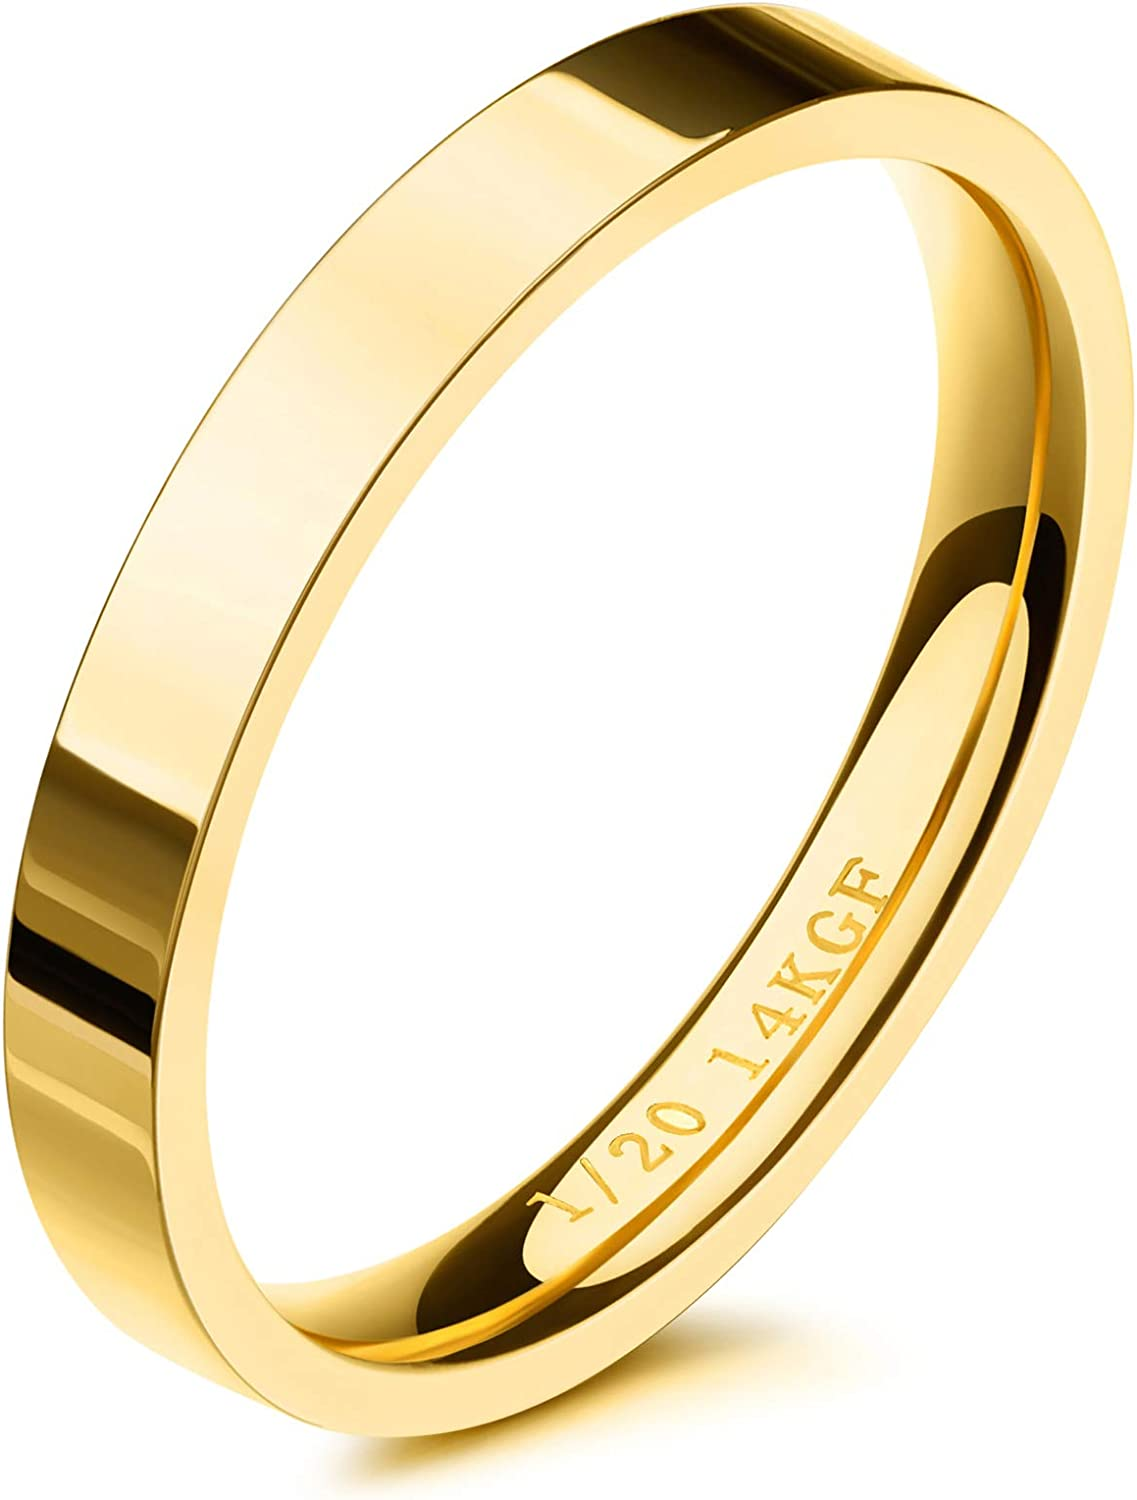 NOKMIT 3mm 14K Gold Filled Rings for Women Girls Stacking Statement Band Pointer Finger Thumb Ring Plain Dome Comfort Fit Size 5 to 10: Clothing, Shoes & Jewelry